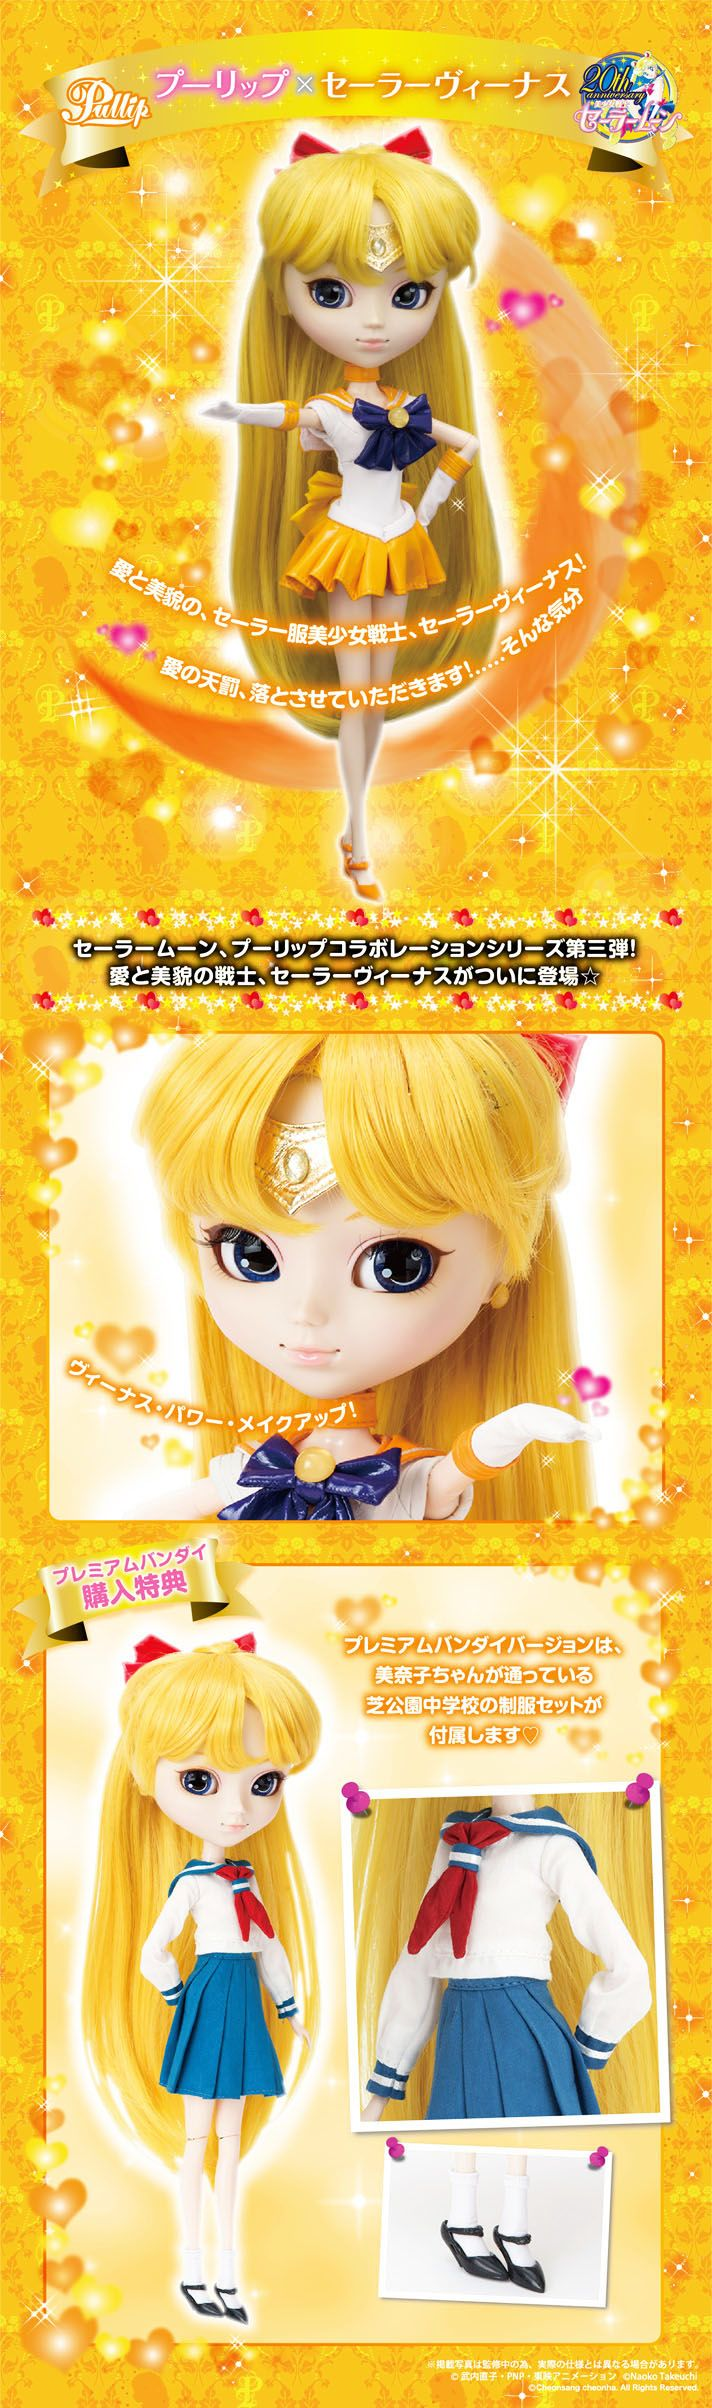 Sailor Moon special: Pullip Sailor Venus + Earphone Jack Set | A Rinkya Blog